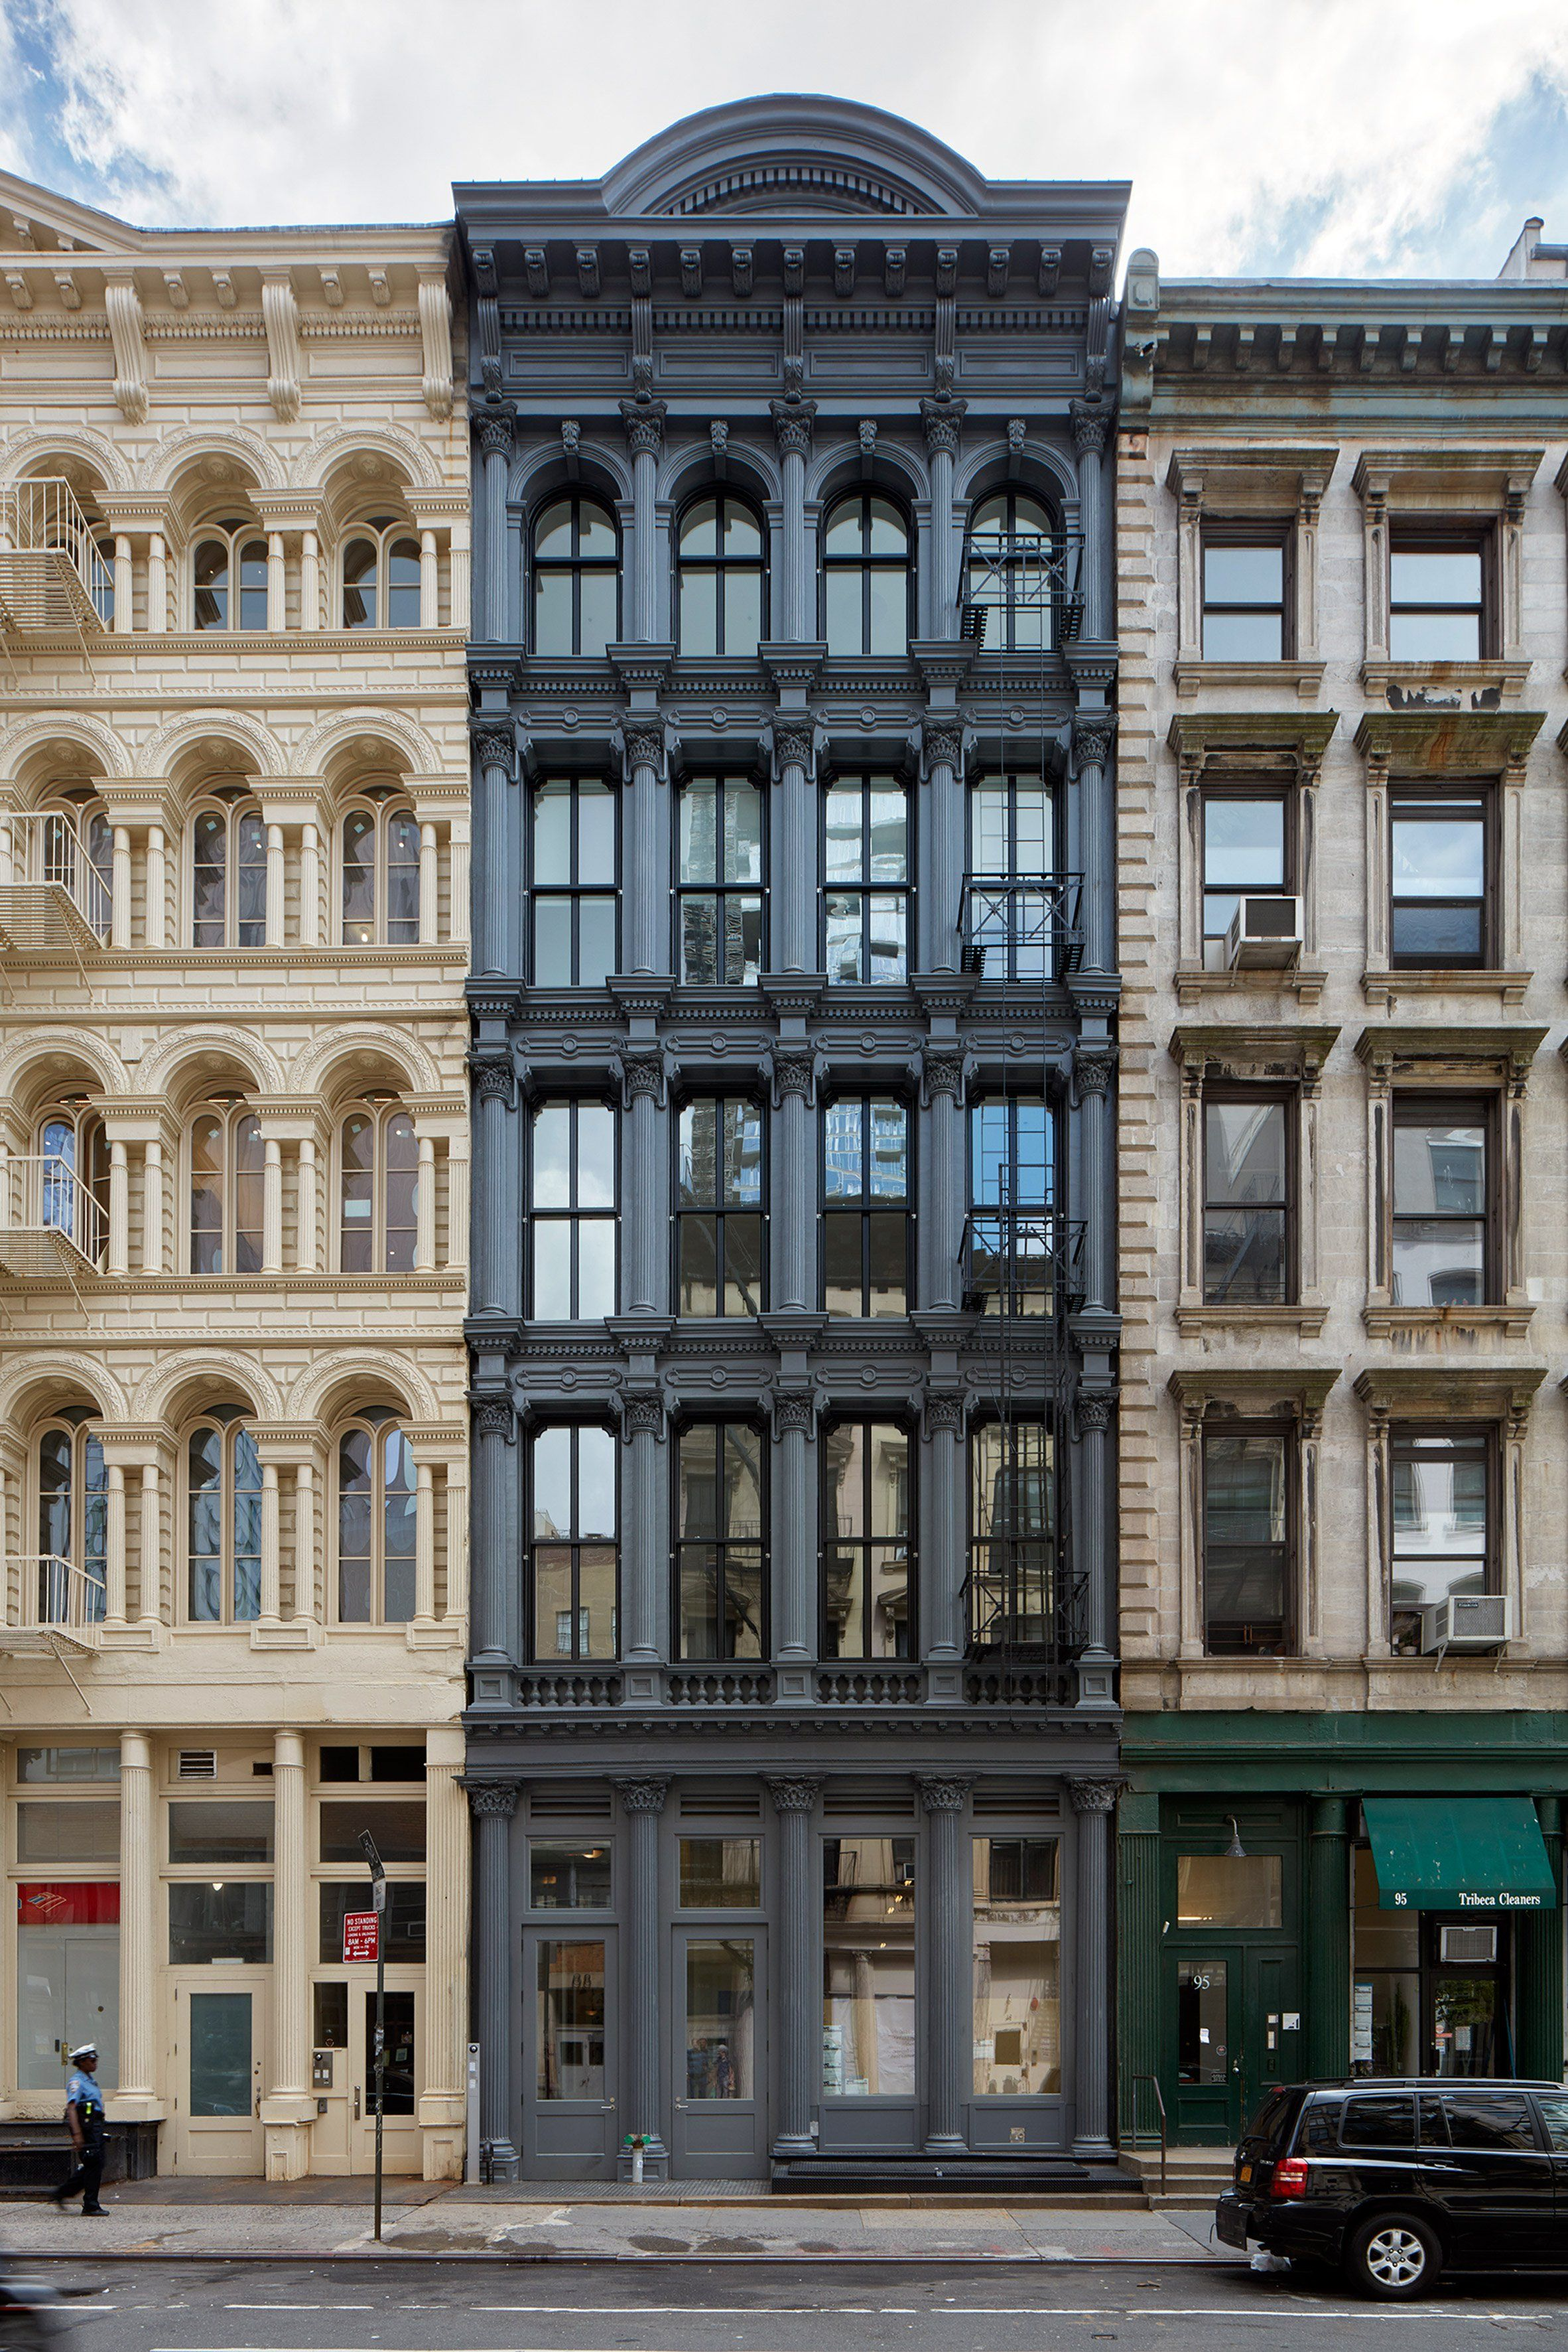 Us Studio Workac Has Renovated A 19th Century Structure In New York And Added A Spacious Penthouse Topped With A Apartment Building Building Building Exterior